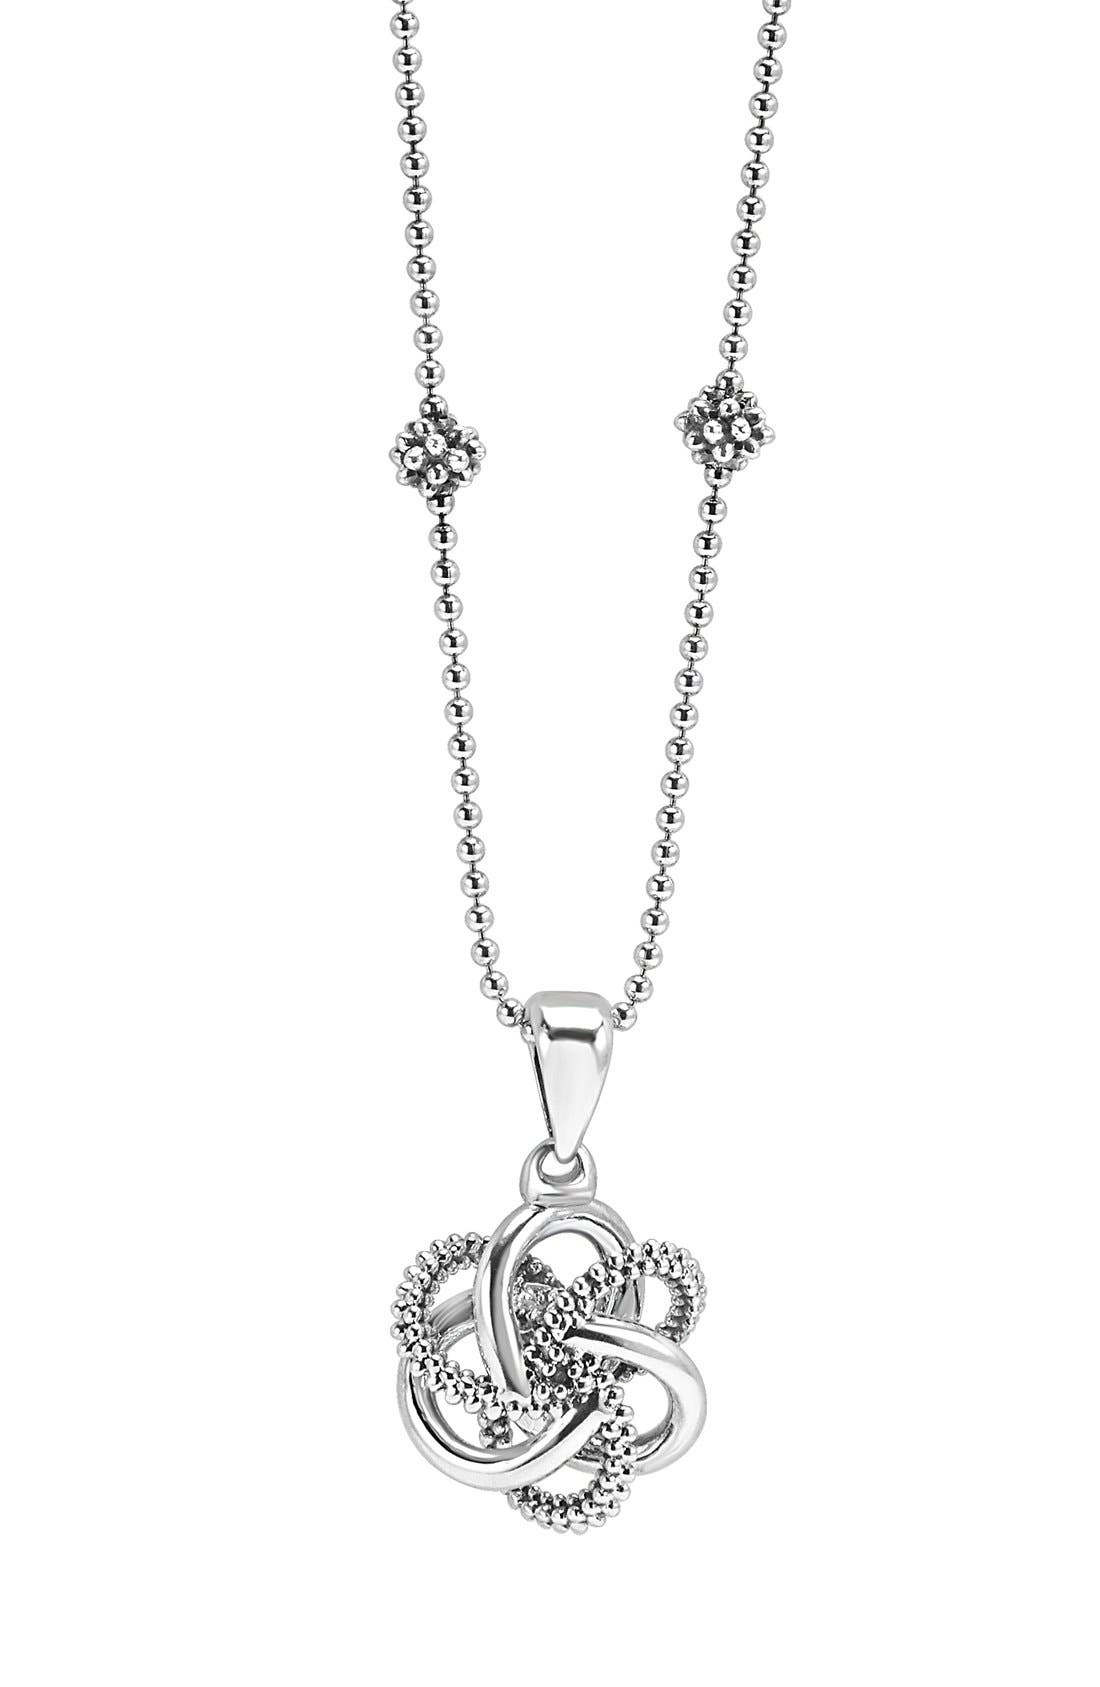 LAGOS 'Love Knot' Pendant Necklace